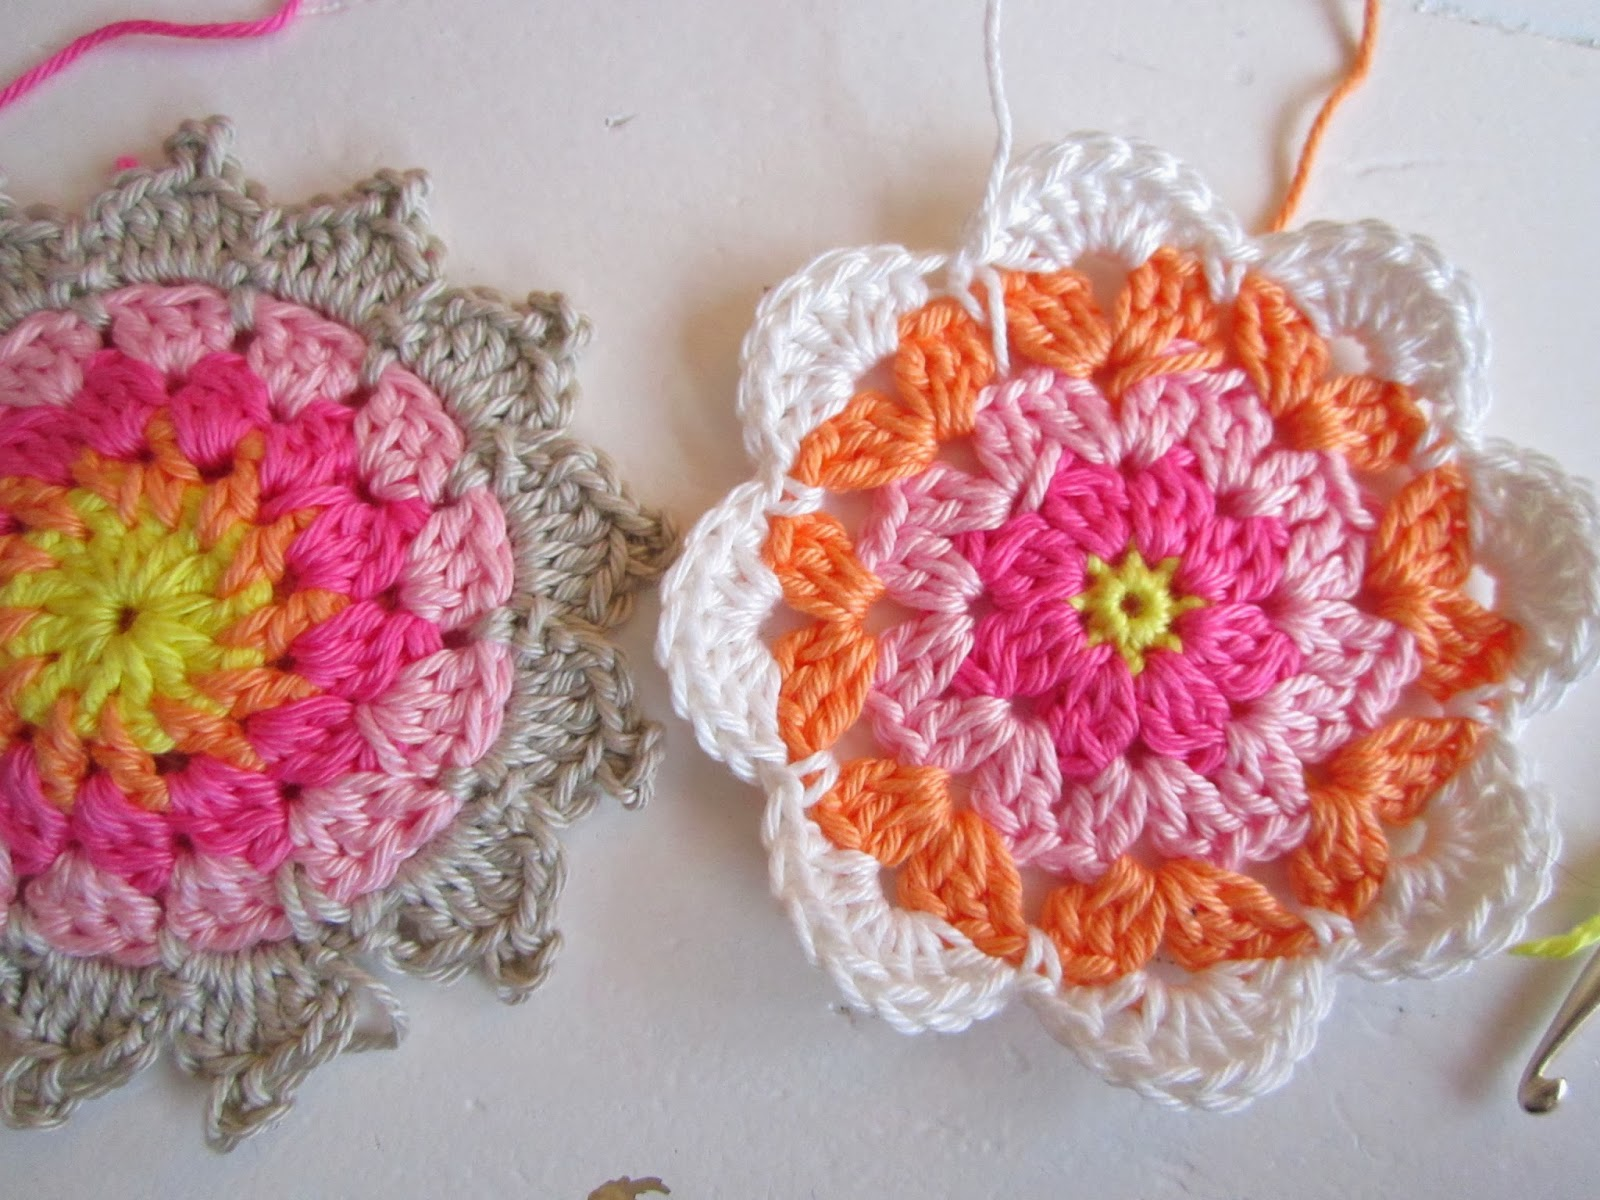 Crochet Blocking : Color n Cream Crochet and Dream: Crocheters Block